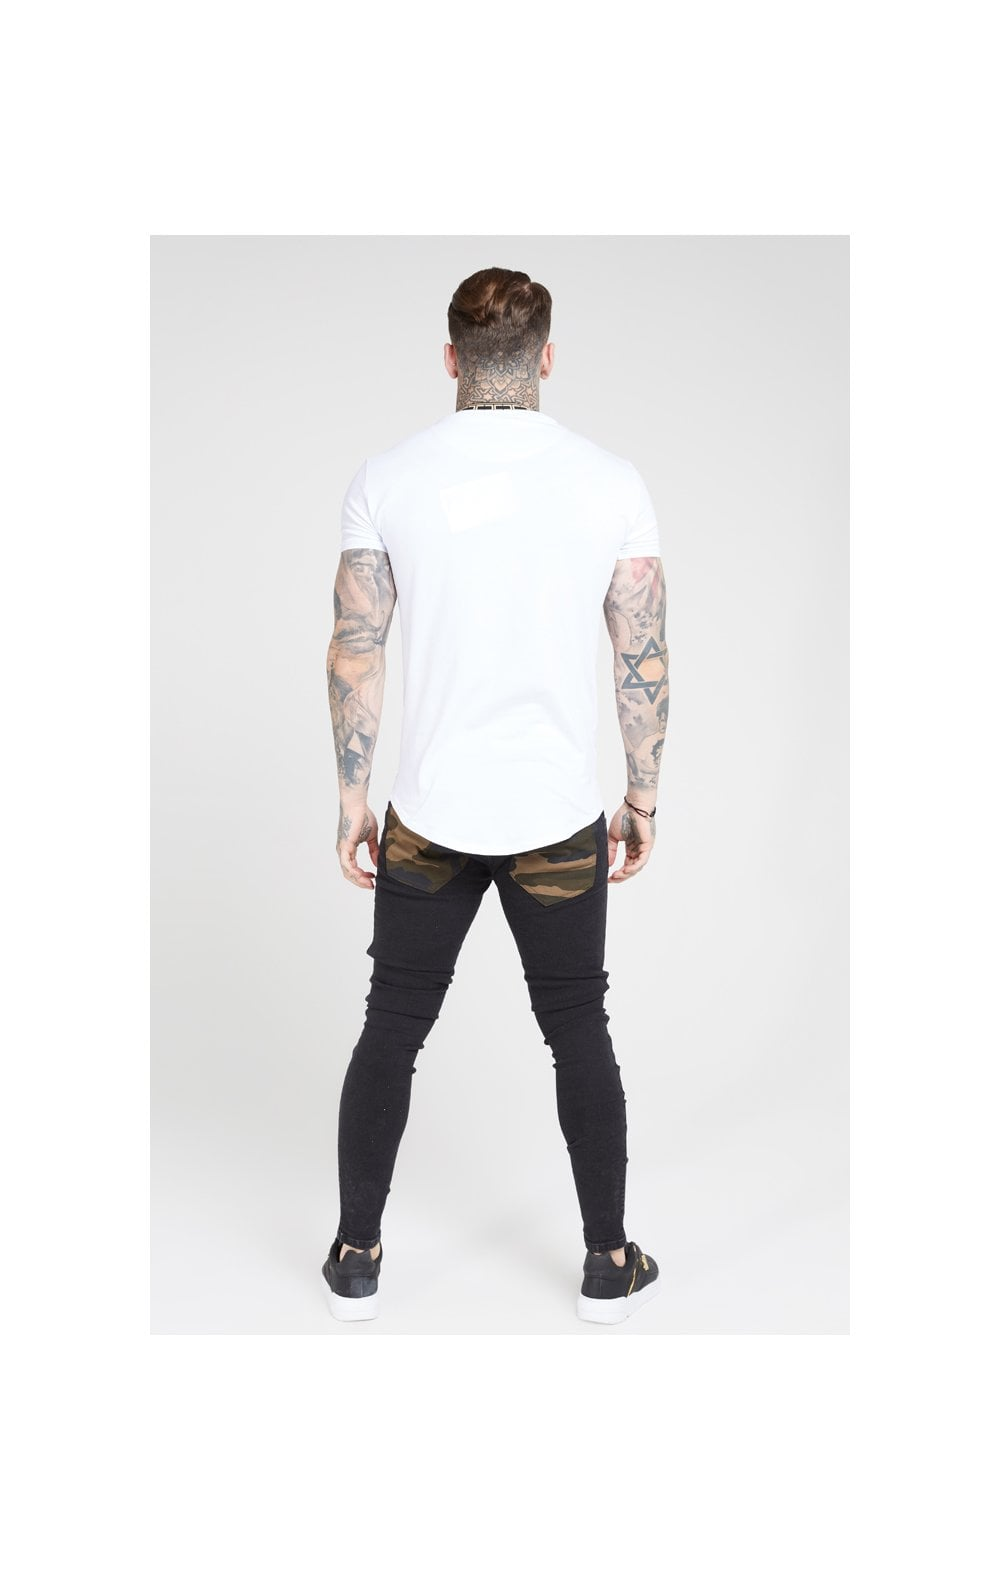 SikSilk Tape Collar Gym Tee - White & Gold (4)